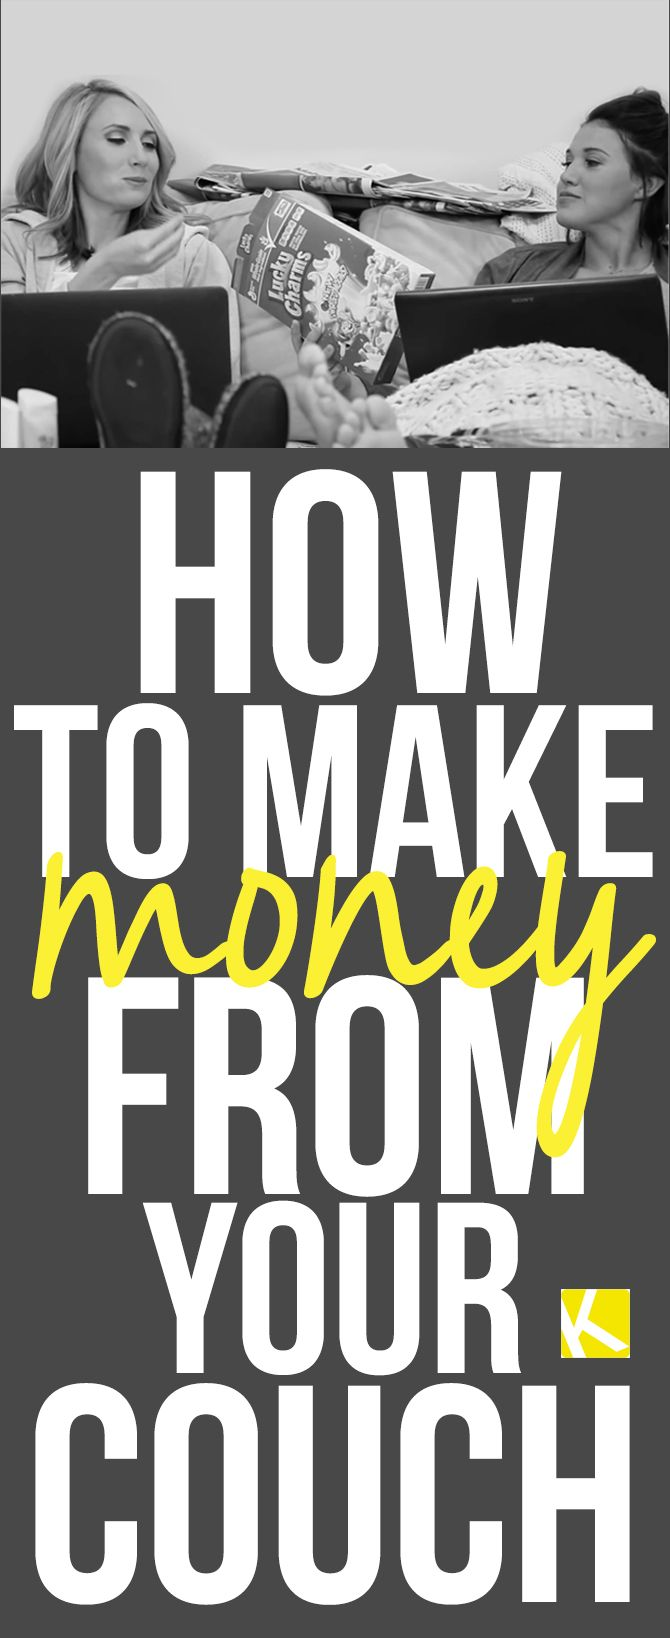 5 Easy Ways to Make Money from Your Couch